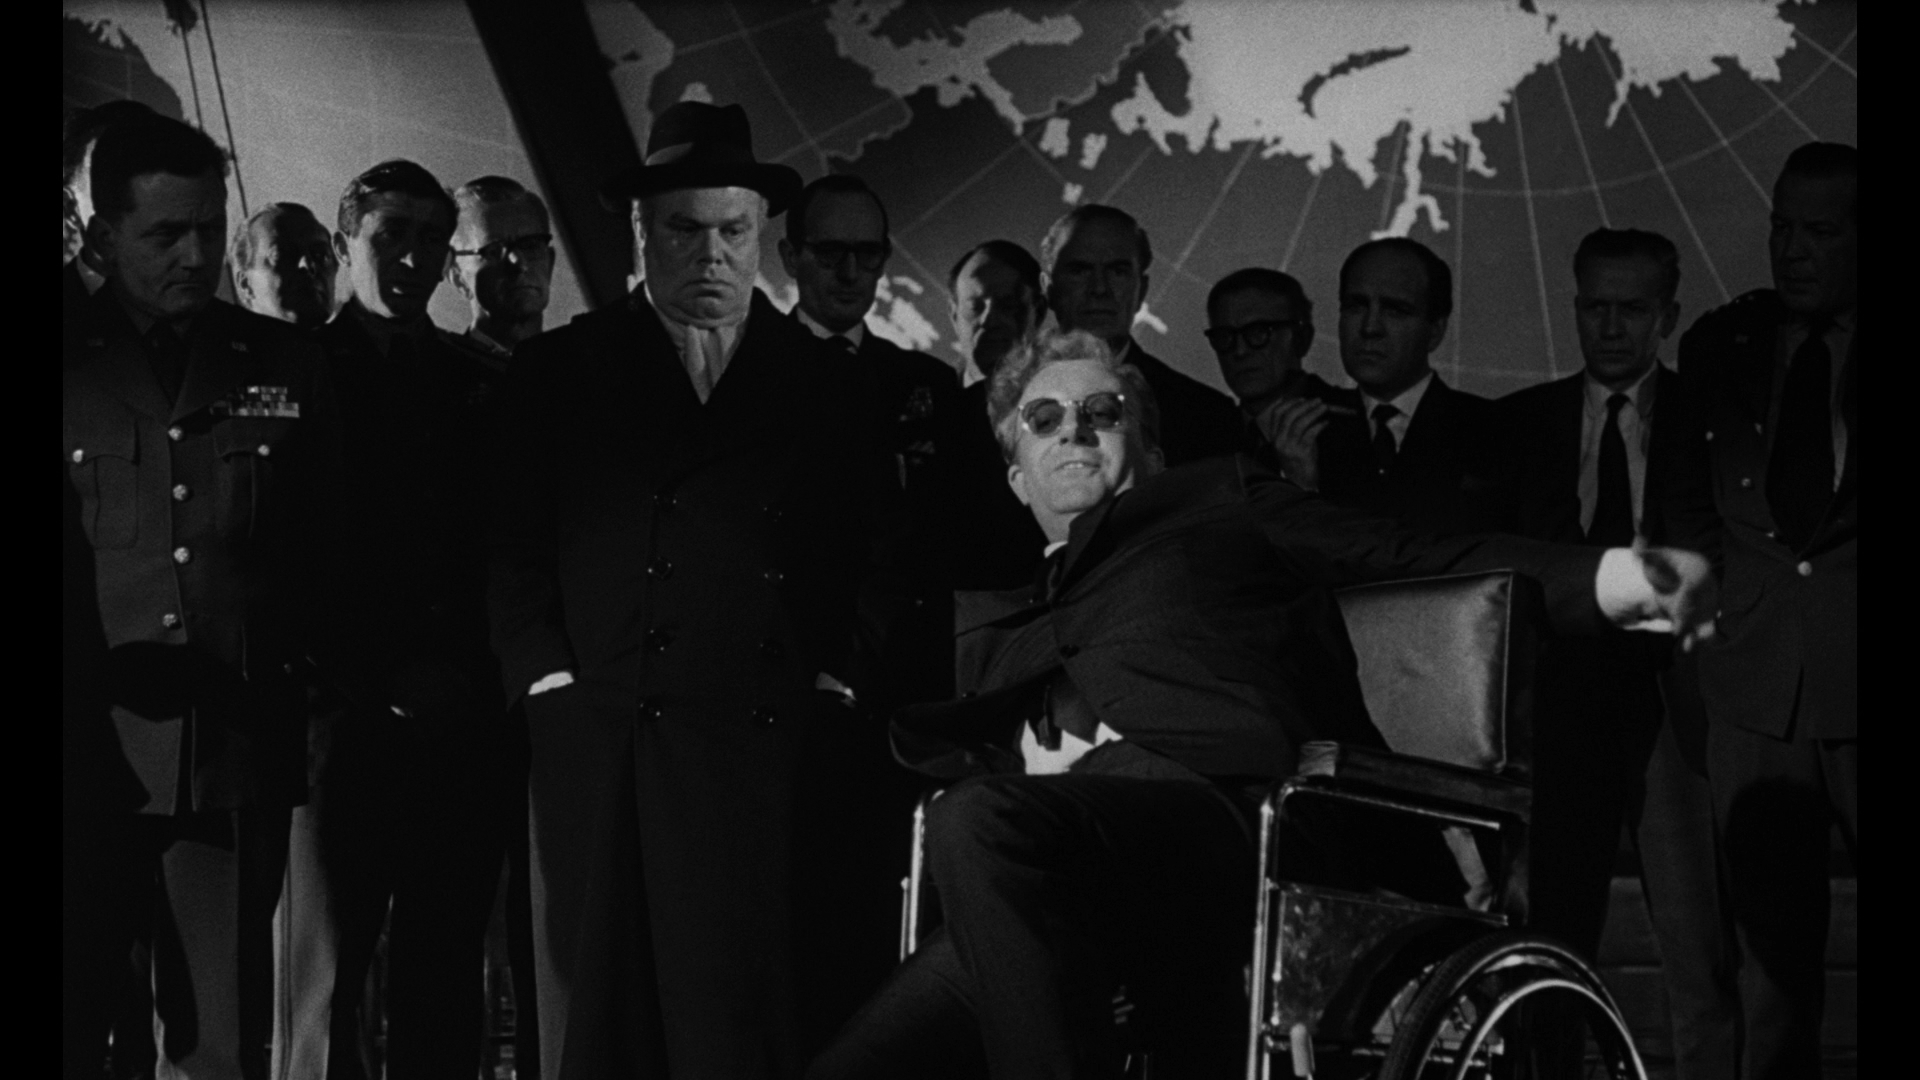 dr strangelove essay dr strangelove nightmare comedy and the ideology of liberal